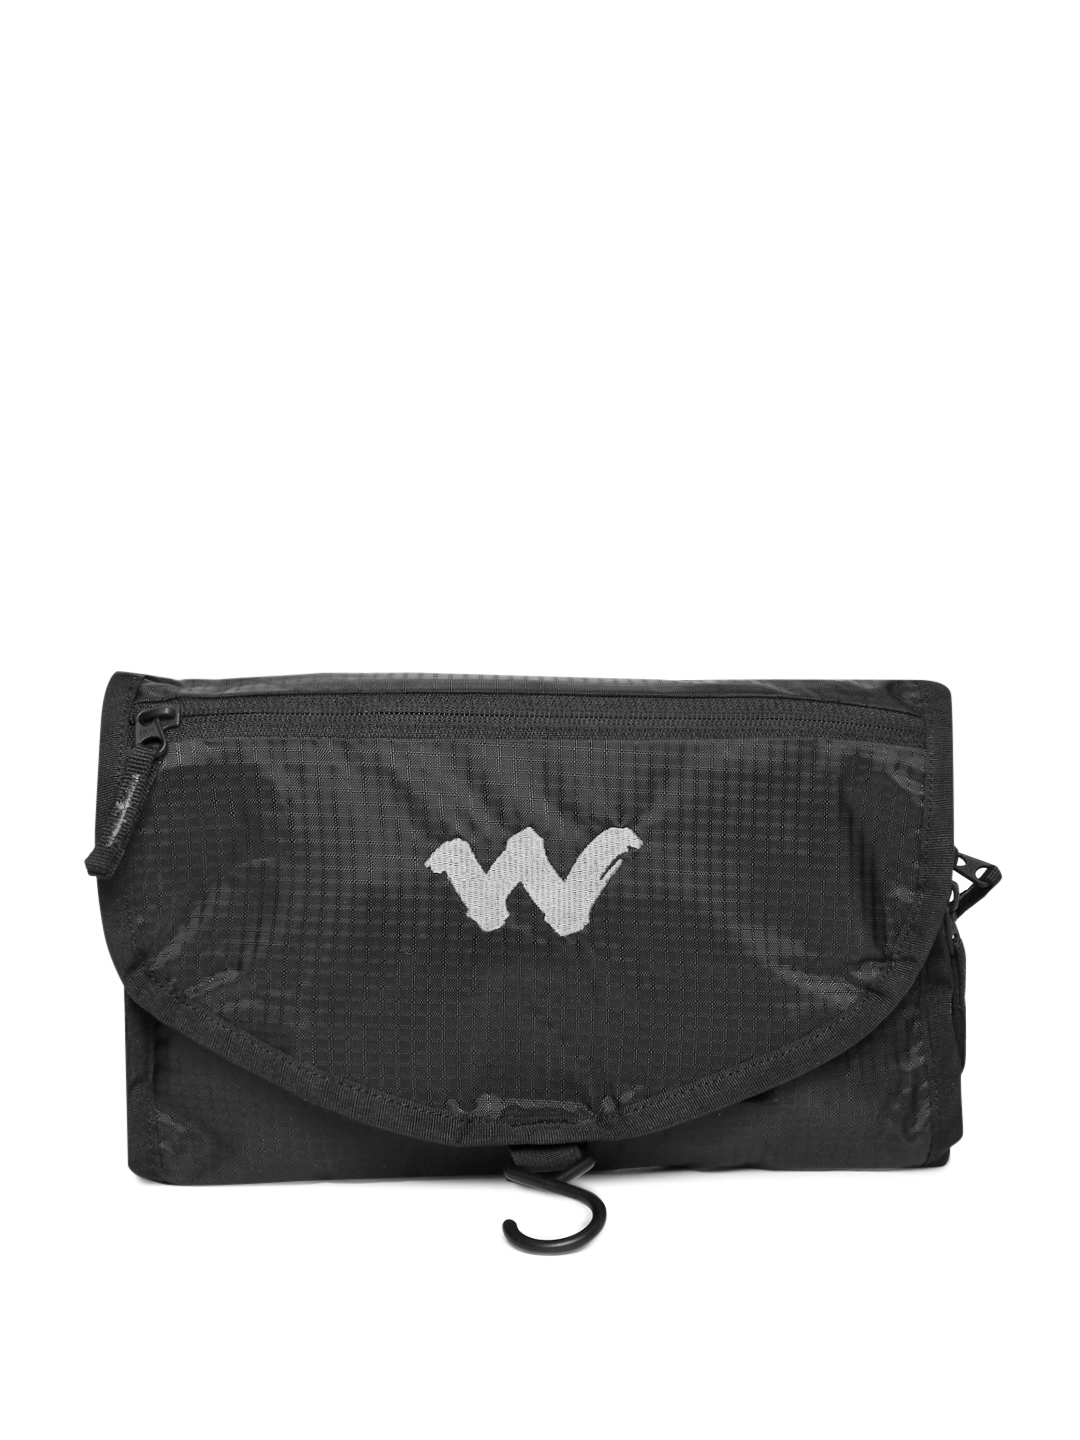 18cd30af028a Buy Wildcraft Unisex Black Pac N Go Travel Kit - Travel Accessory ...